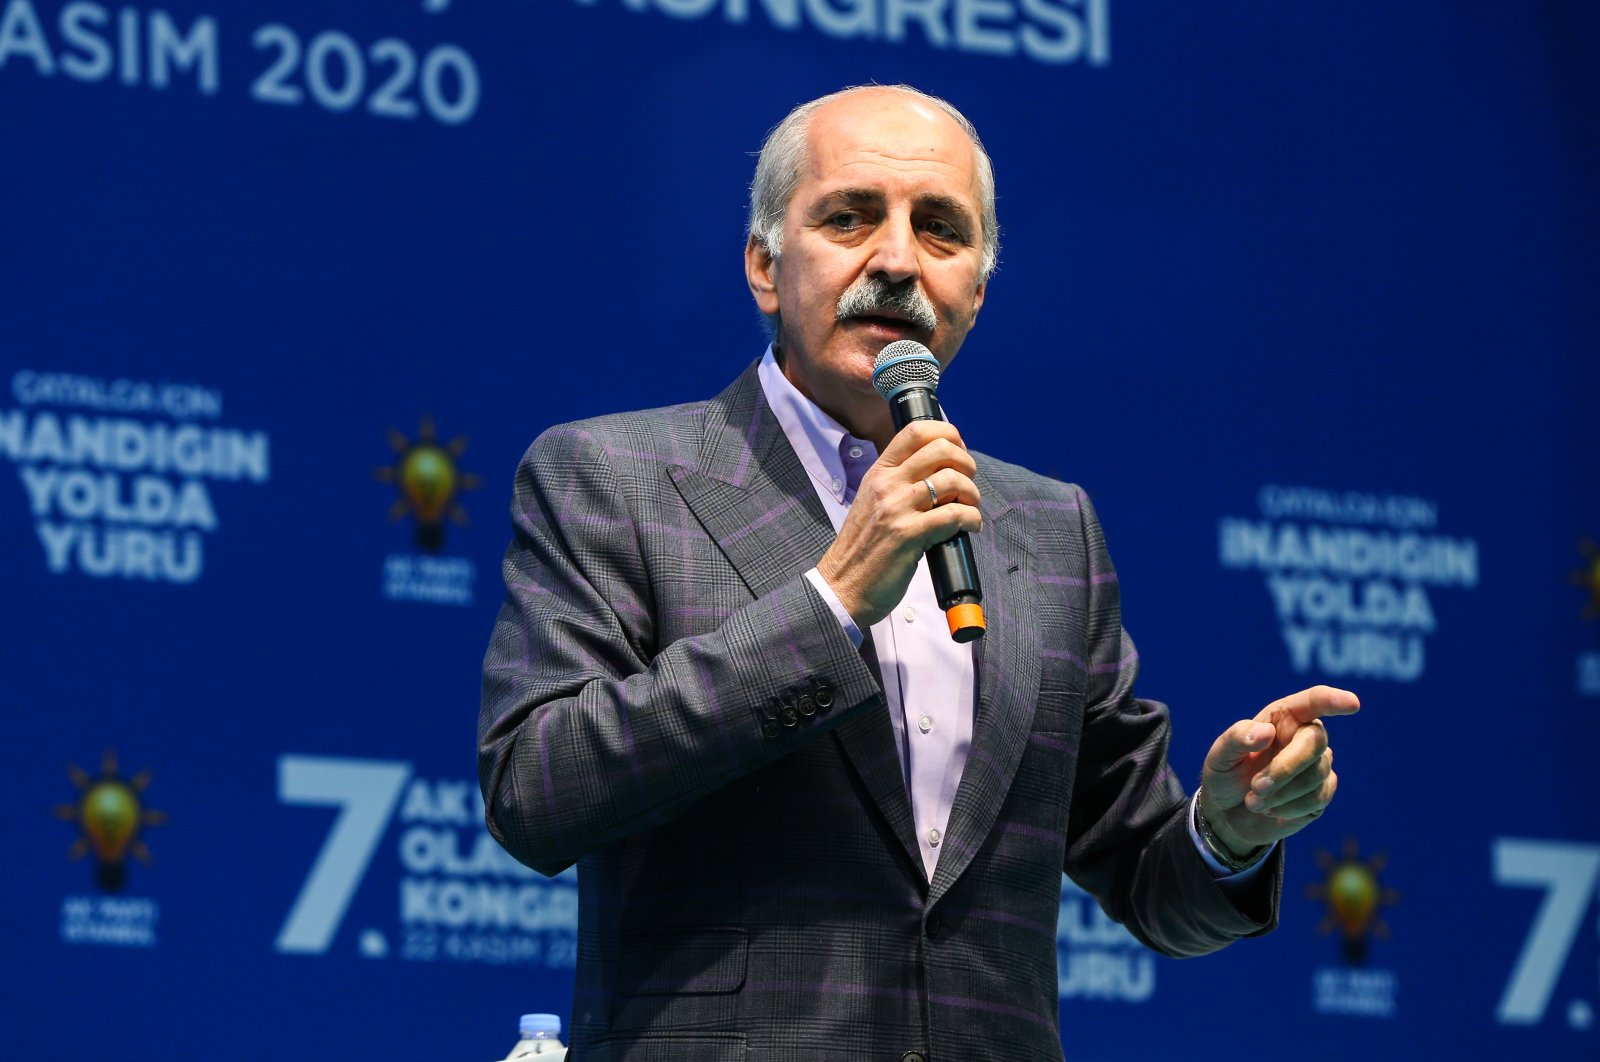 The ruling Justice and Development Party's (AK Party) Chairperson Numan Kurtulmuş speaks at the party's provincial congress in Çatalca, Istanbul, Nov. 22, 2020 (AA Photo)